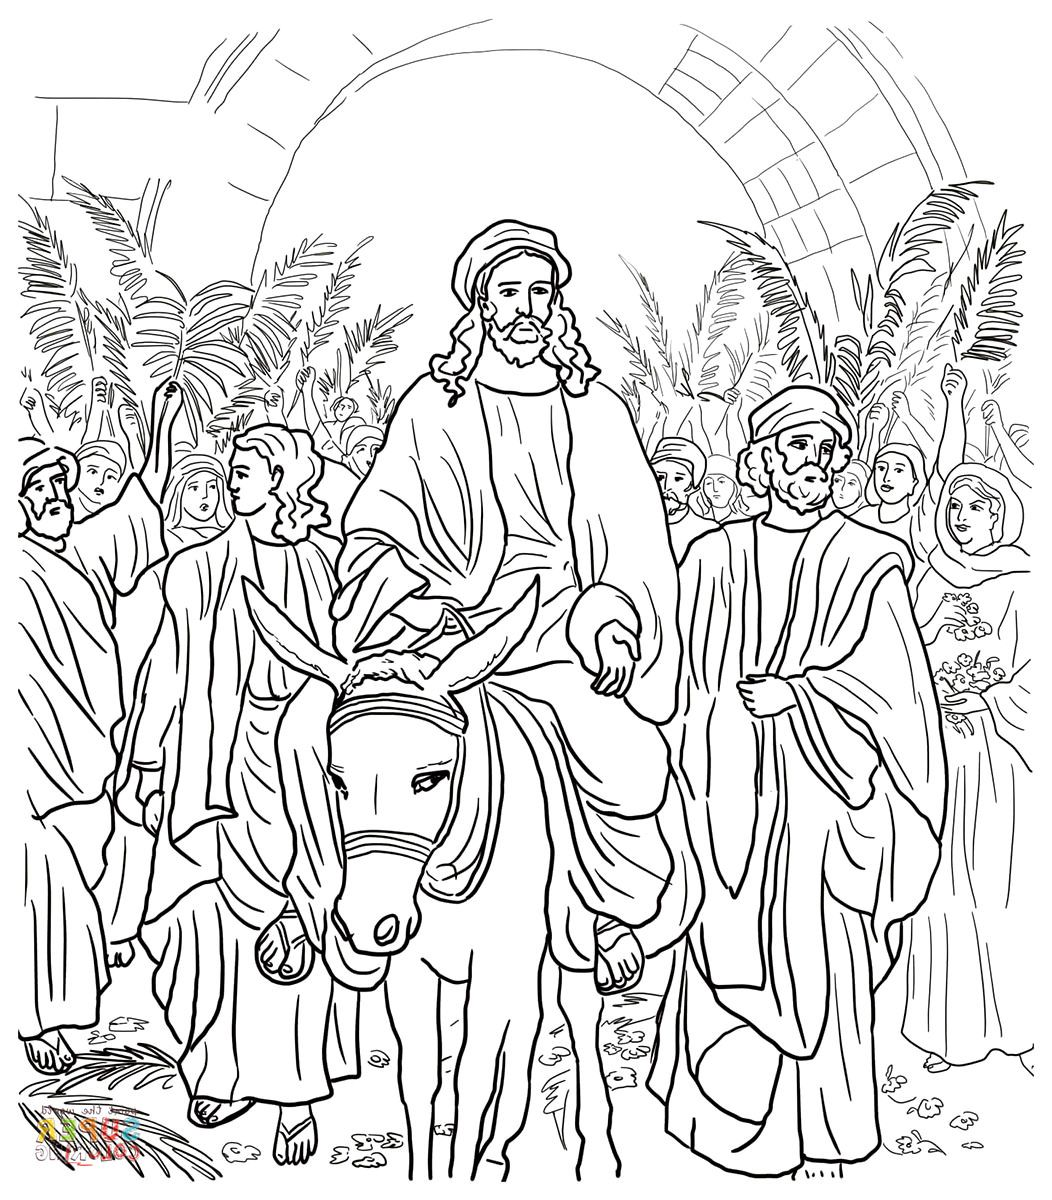 Coloring Page Of Mark 11 1 11 Bible Coloring Pages Jesus Coloring Pages Bible Coloring